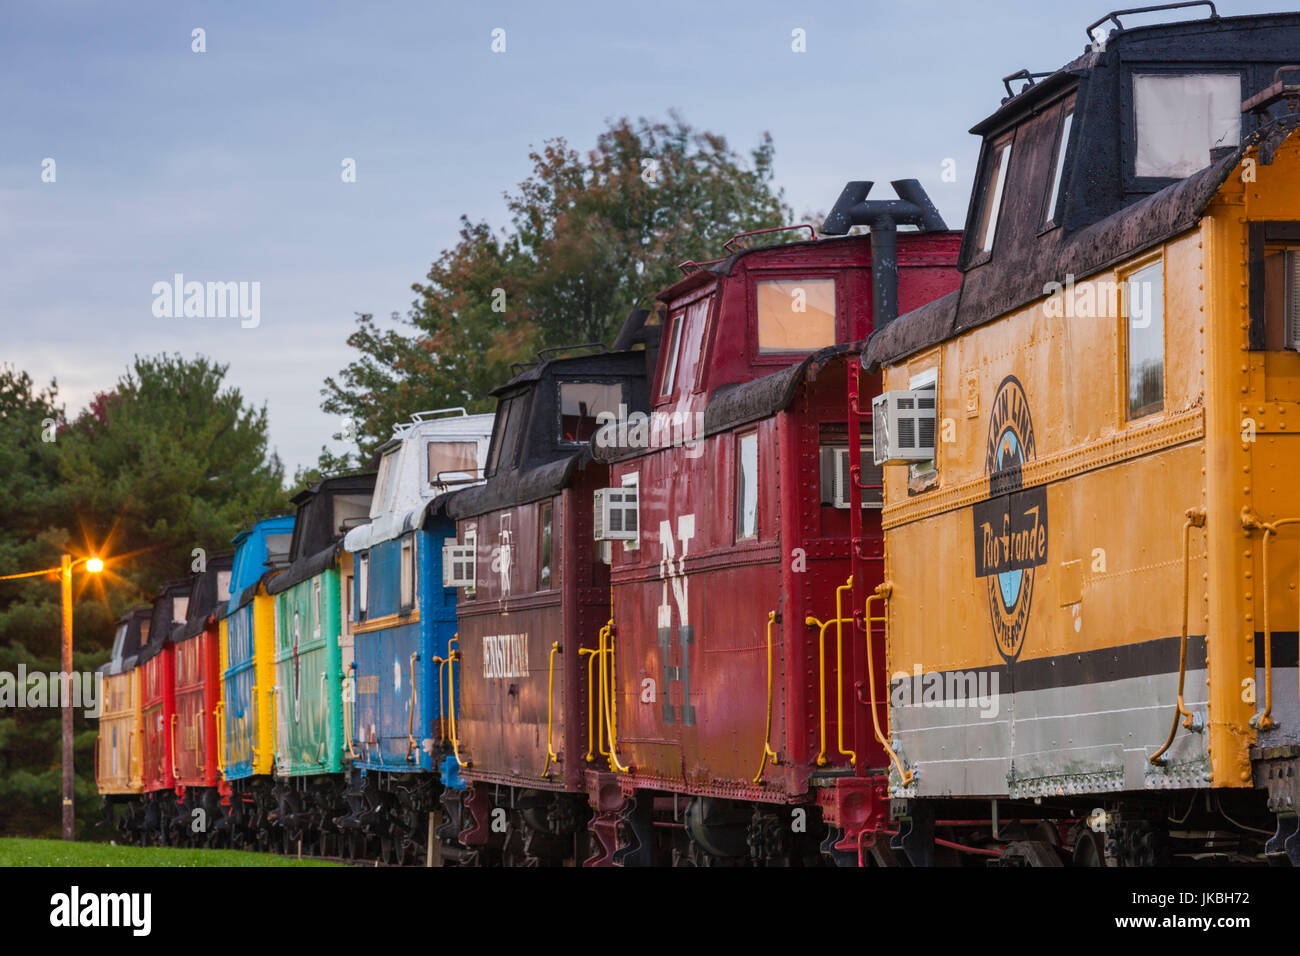 USA, Pennsylvania, Pennsylvania Dutch Country, Ronks, Red Caboose Motel, accomodation in historic caboose railroad - Stock Image